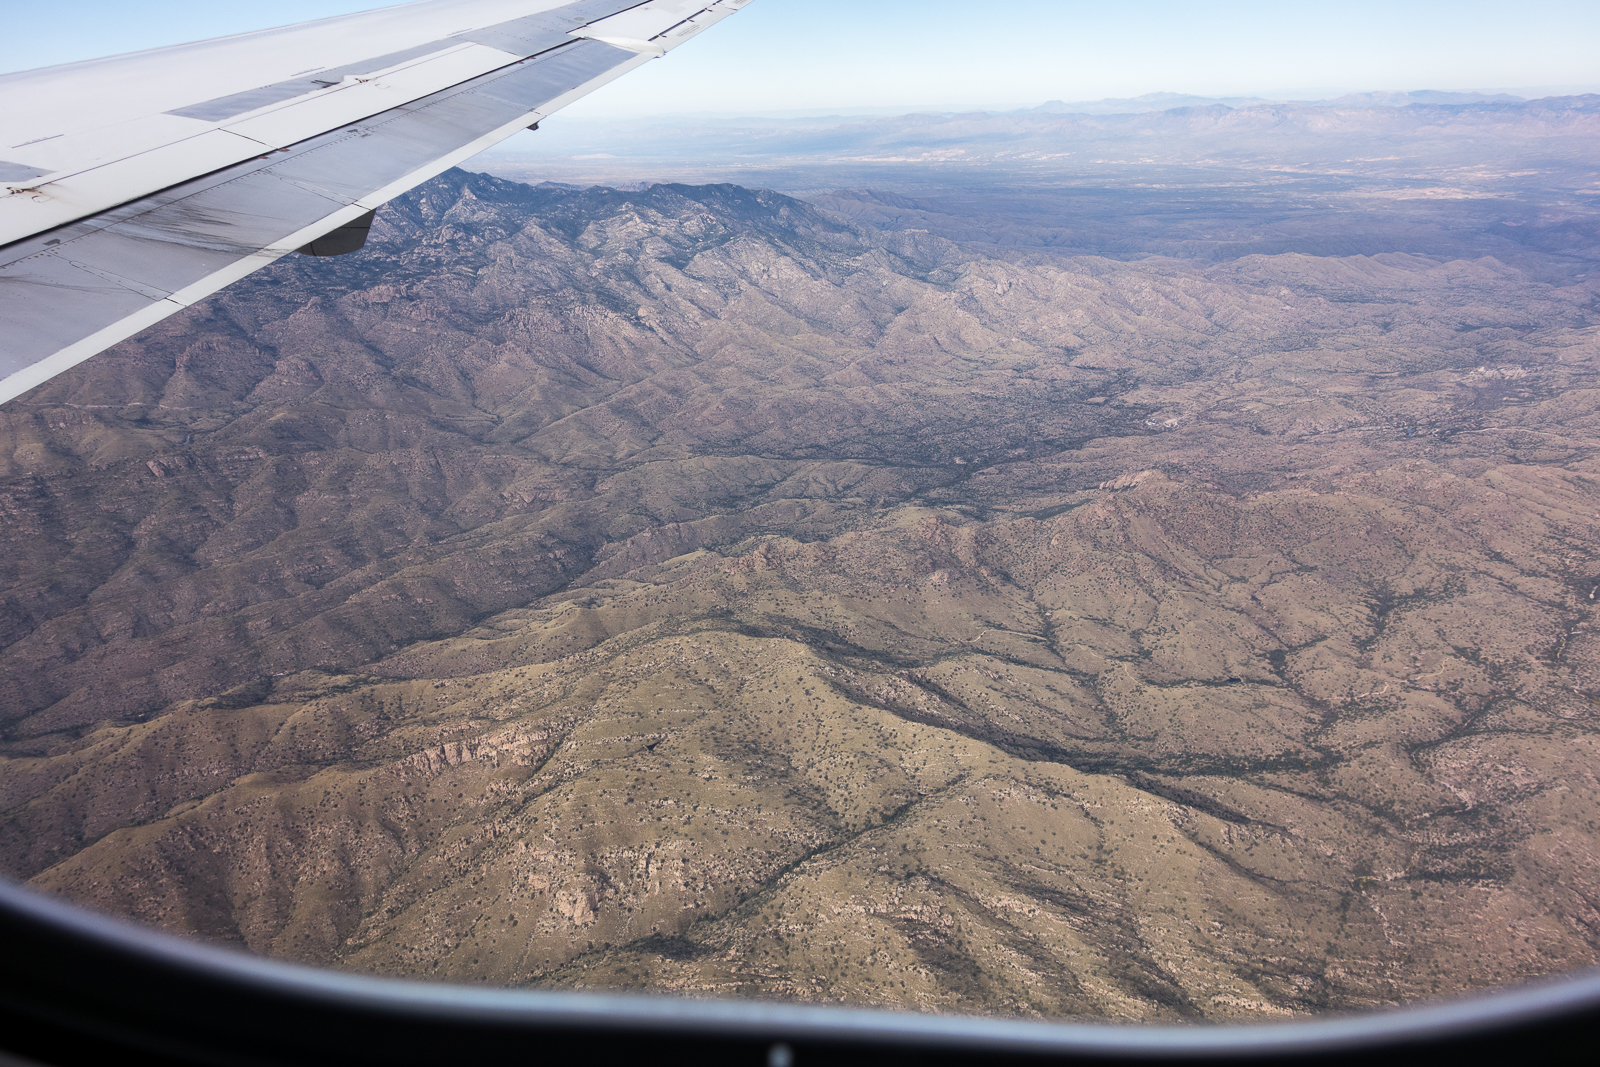 Looking down on Agua Caliente Hill on a flight coming into Tucson from DFW. November 2015.